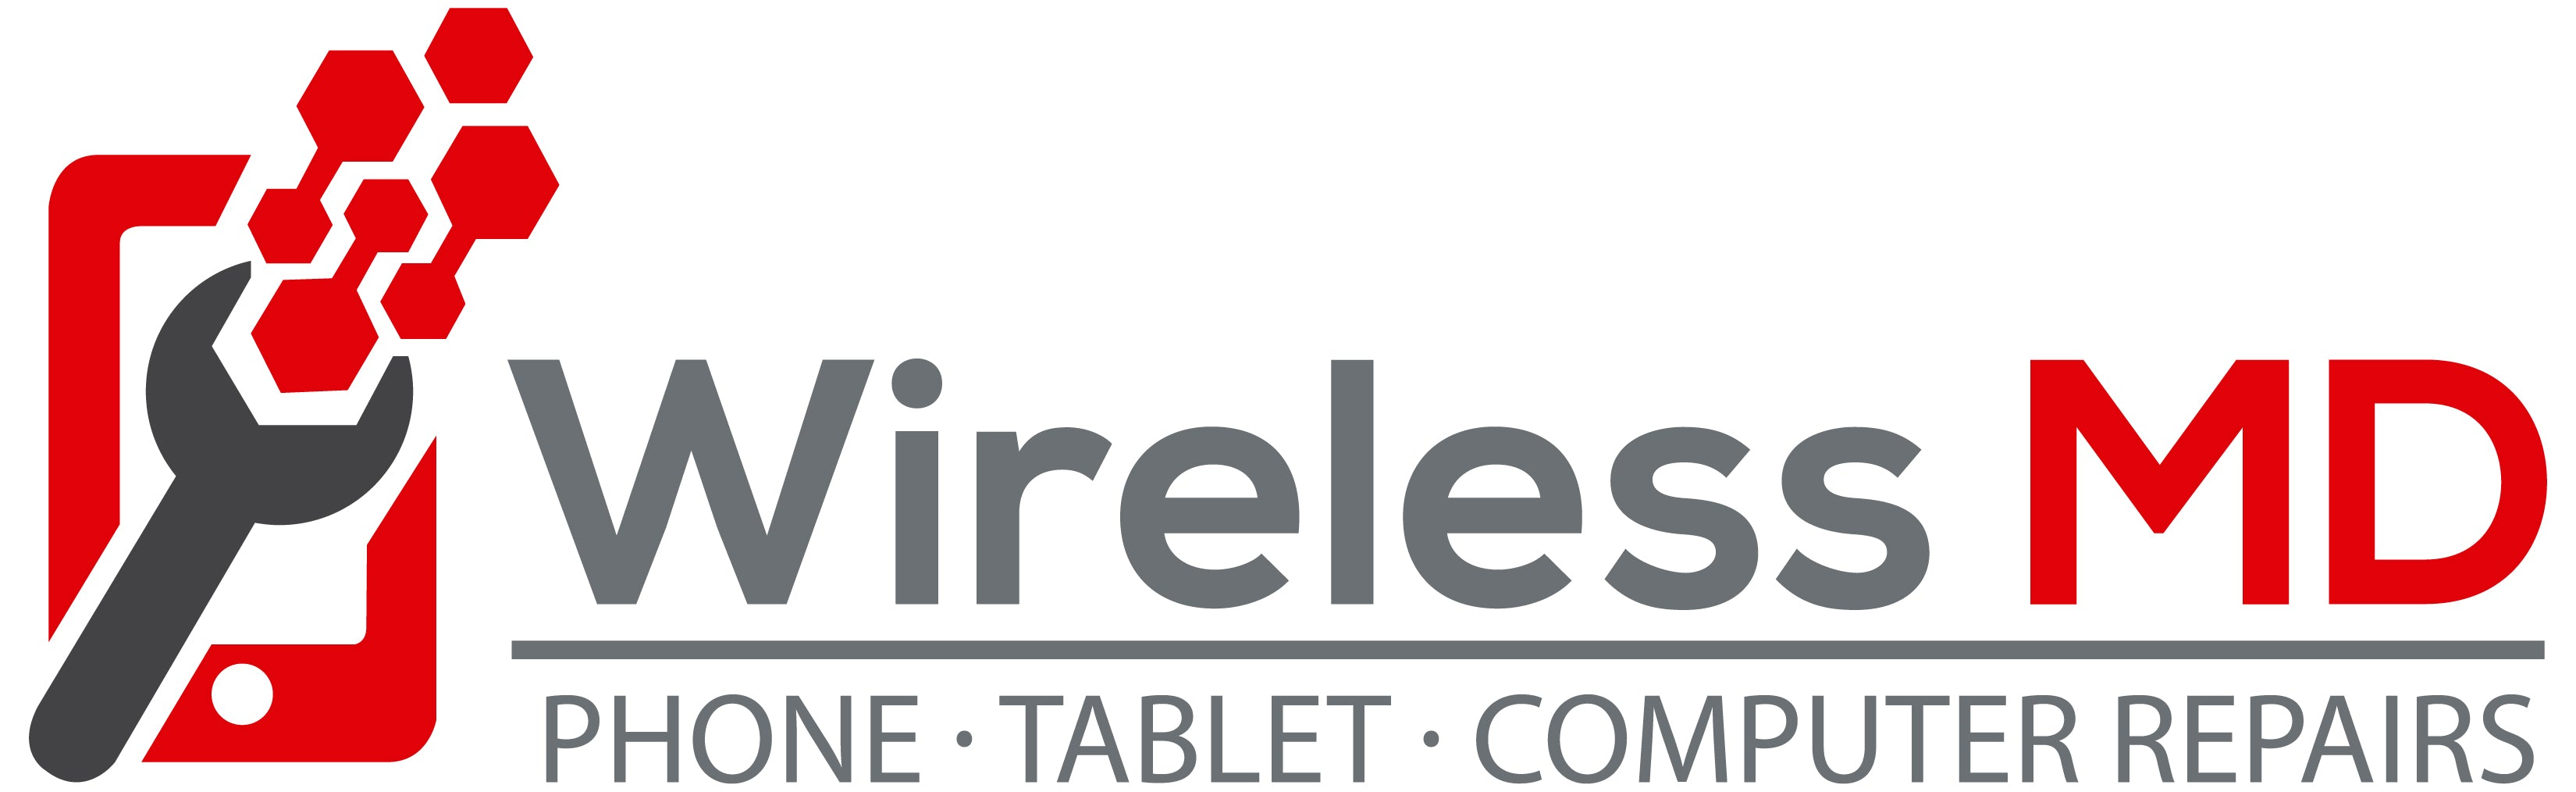 Wireless MD   Phone & Tablet Repairs